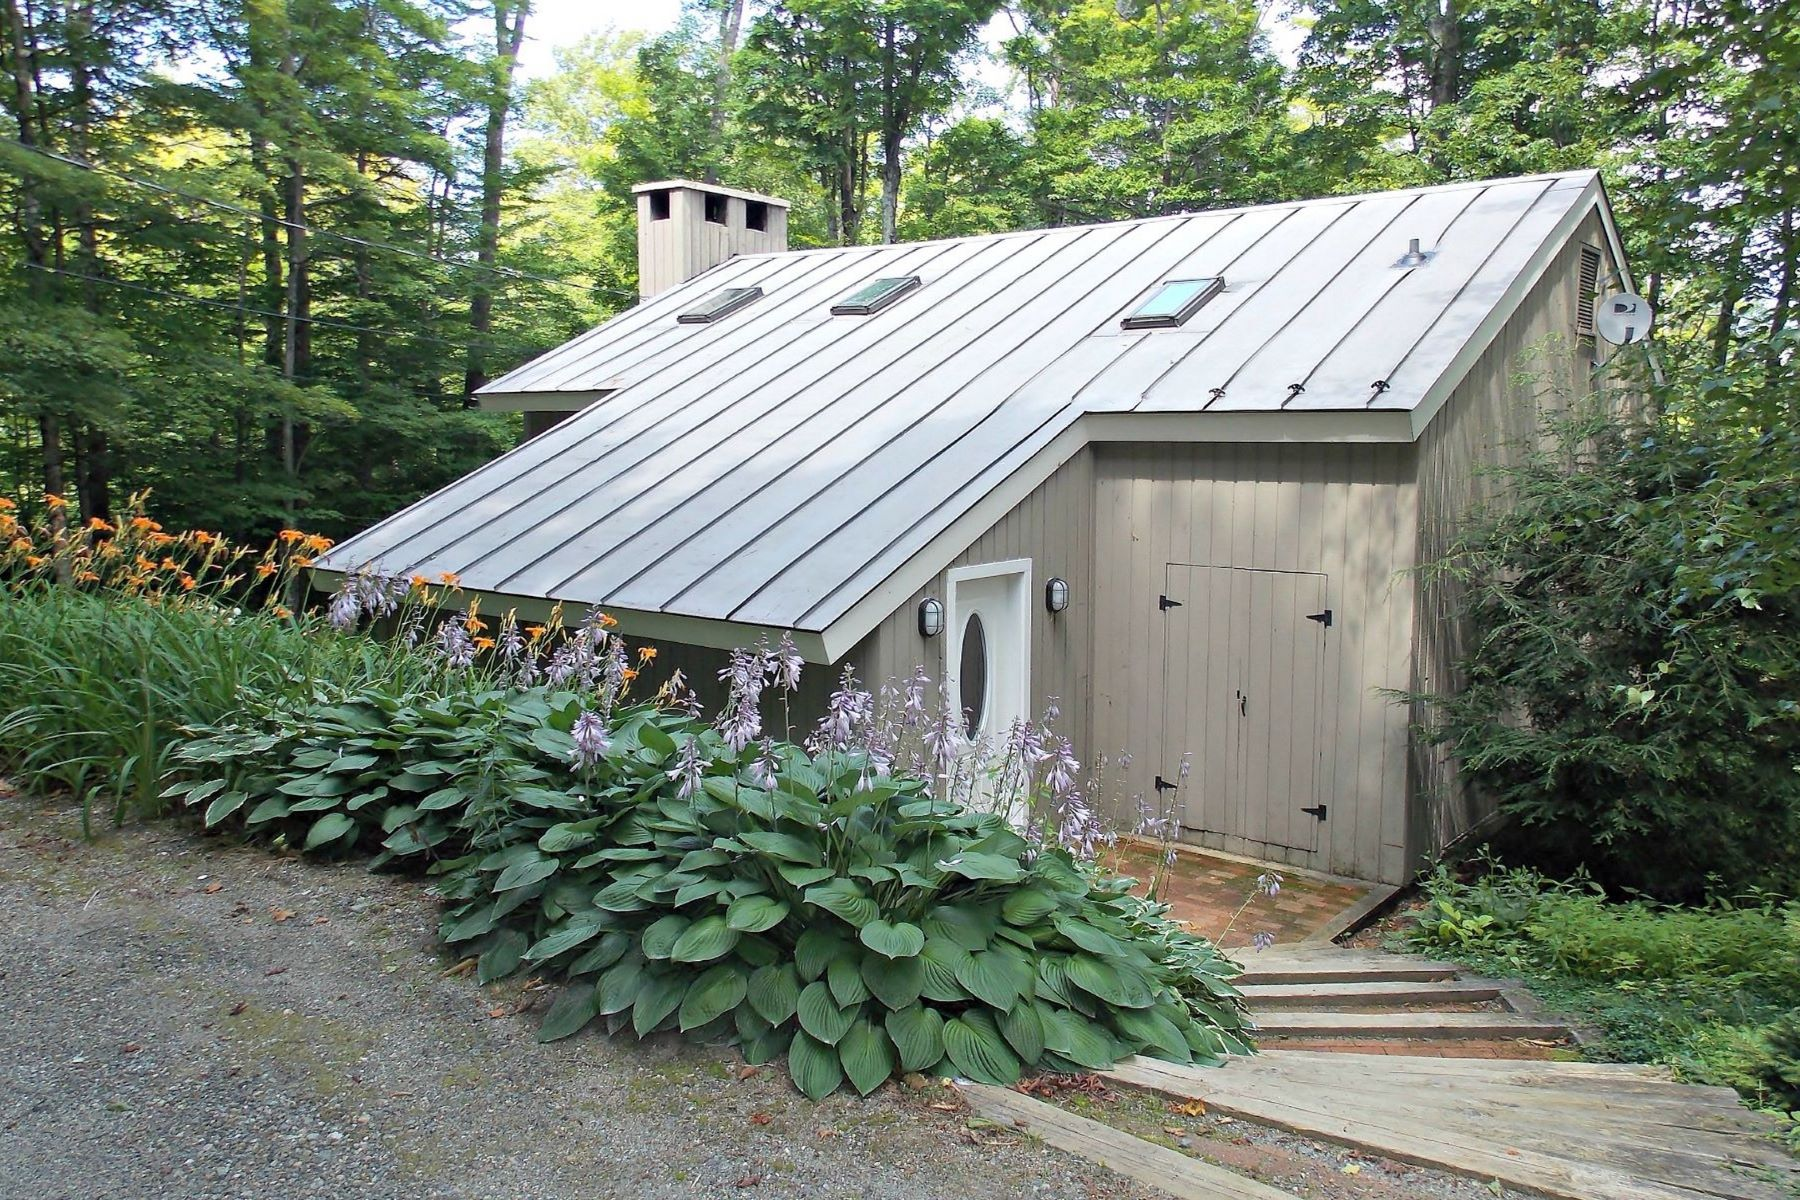 Single Family Home for Sale at 6 Roundtree Rd, Winhall Winhall, Vermont, 05340 United States